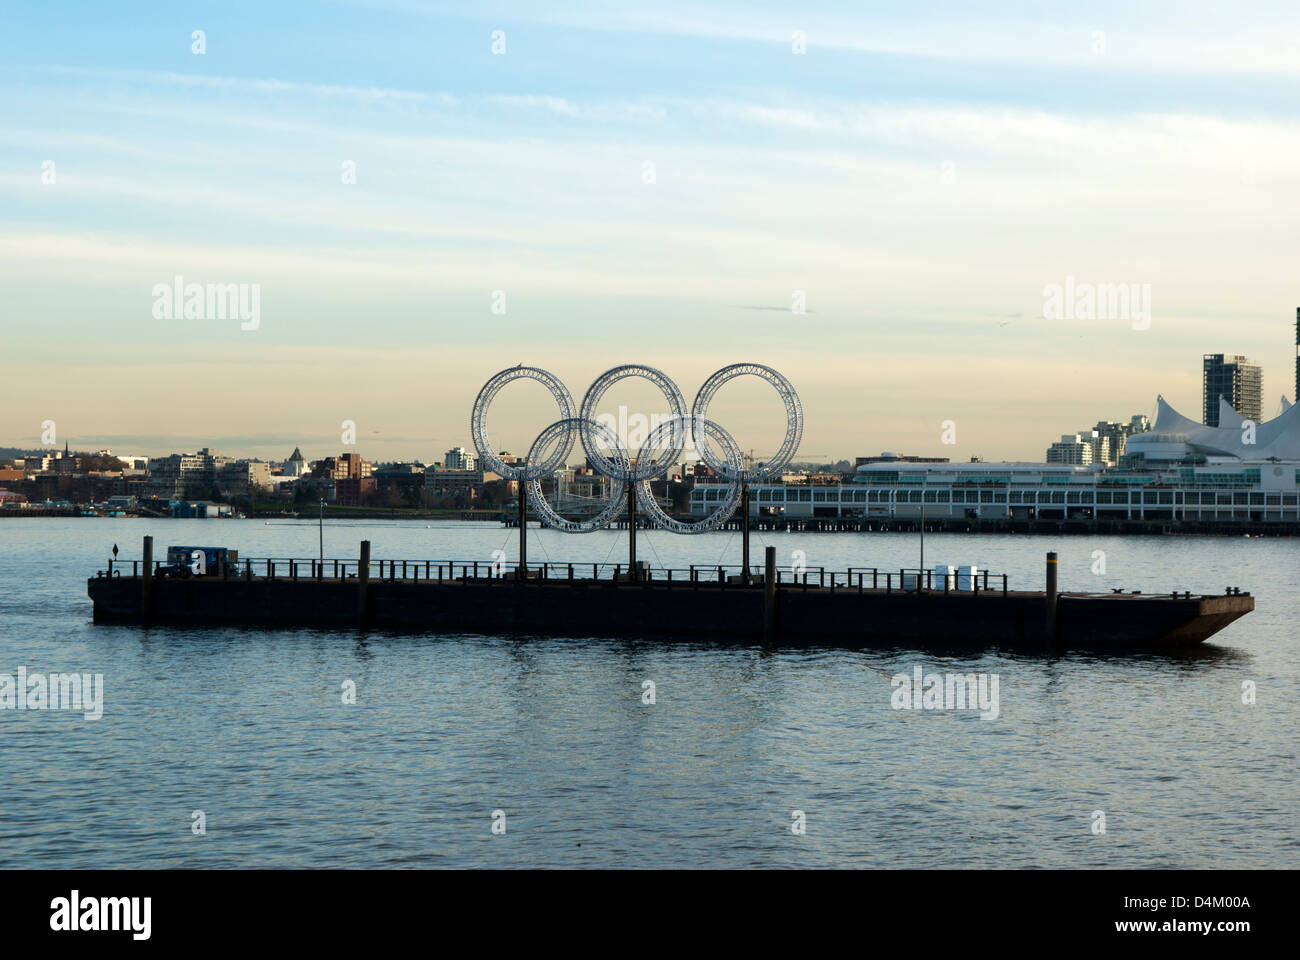 Olympic rings  for 2010 winter olympics on a barge in the harbour at Vancouver, British Columbia, Canada Stock Photo